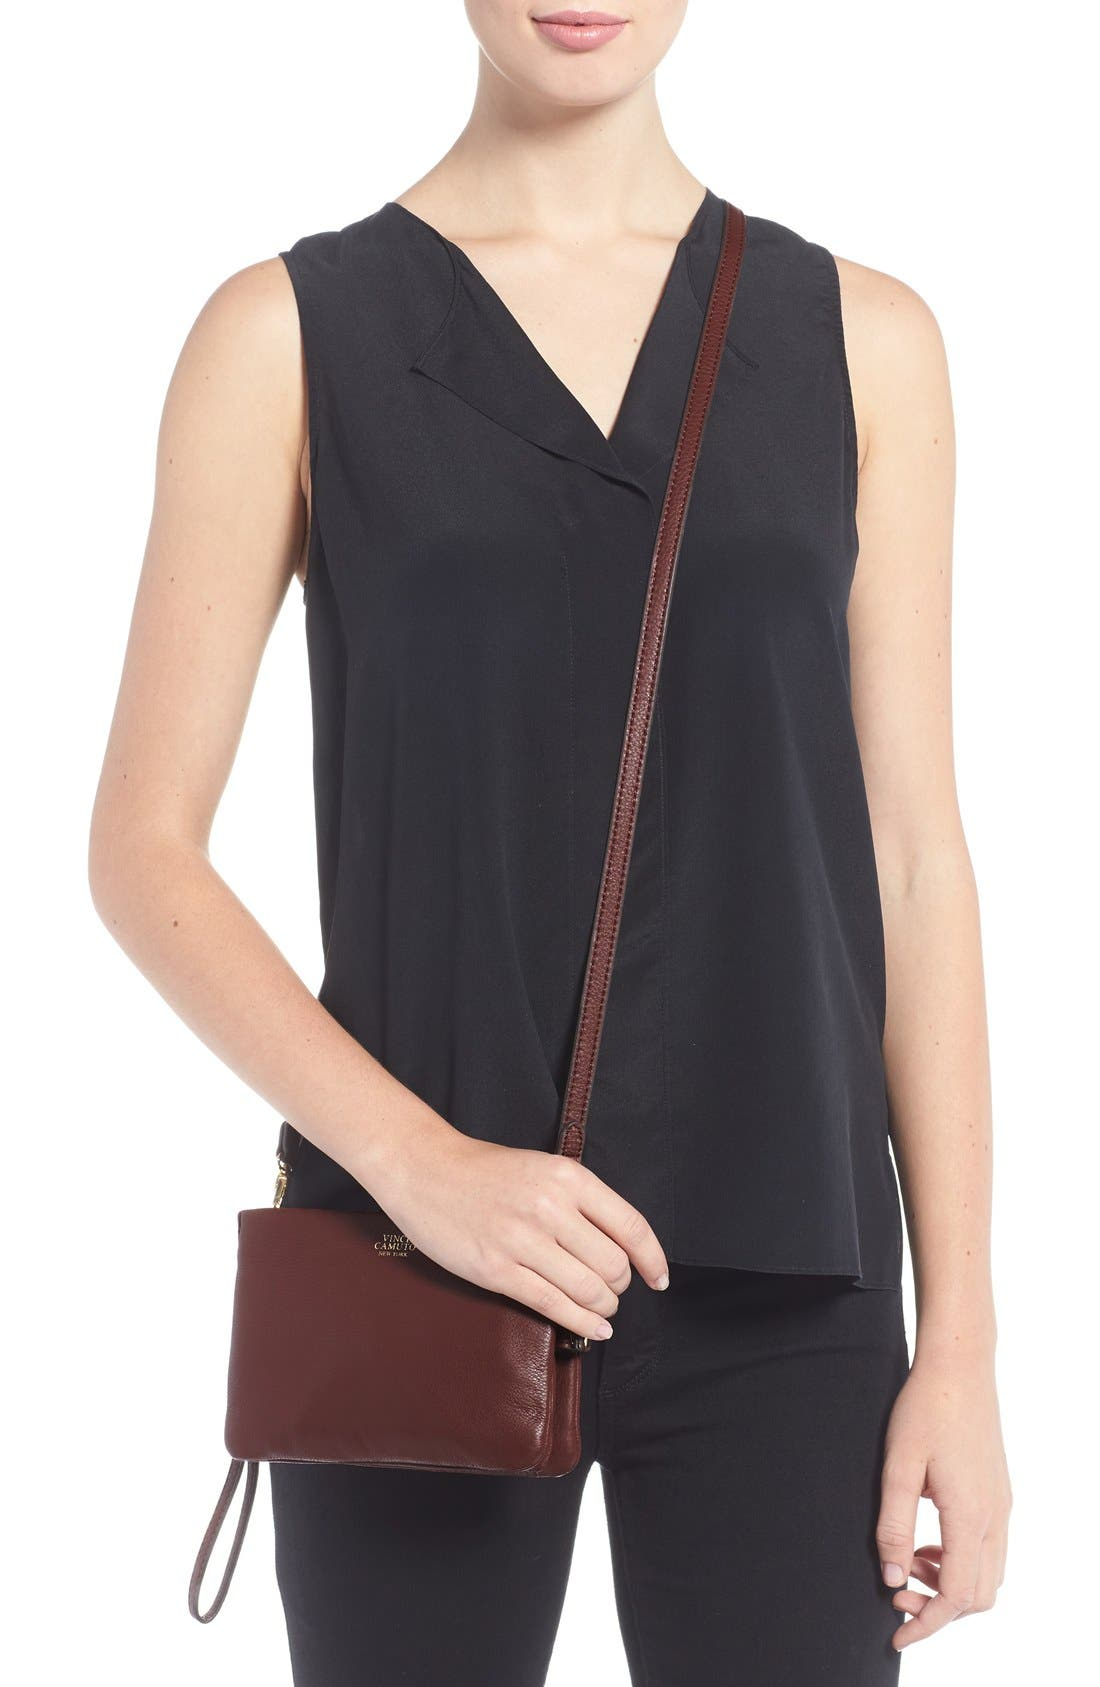 'Cami' Leather Crossbody Bag,                             Alternate thumbnail 68, color,